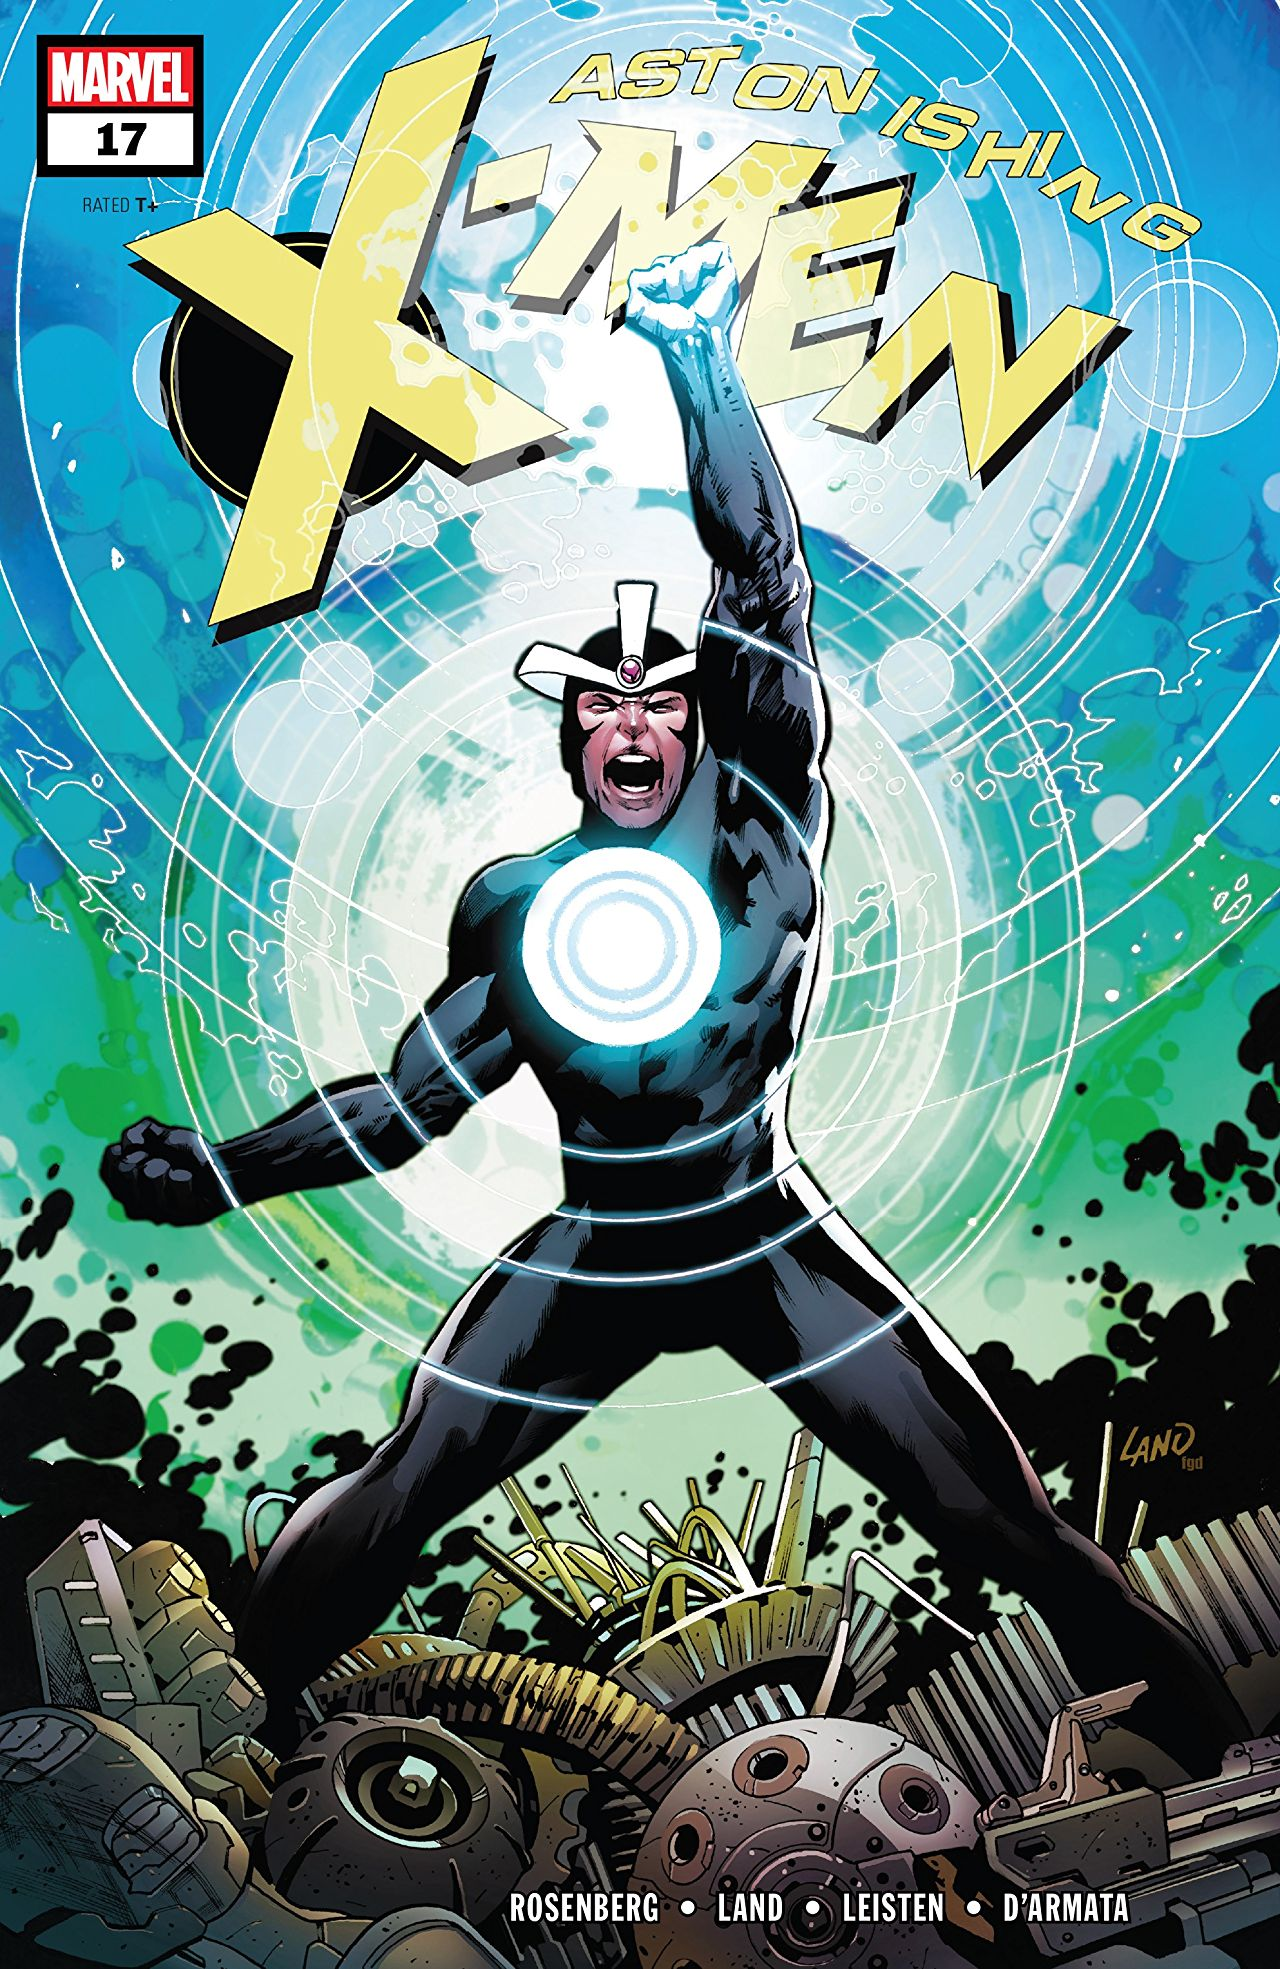 Marvel Preview: Astonishing X-Men #17